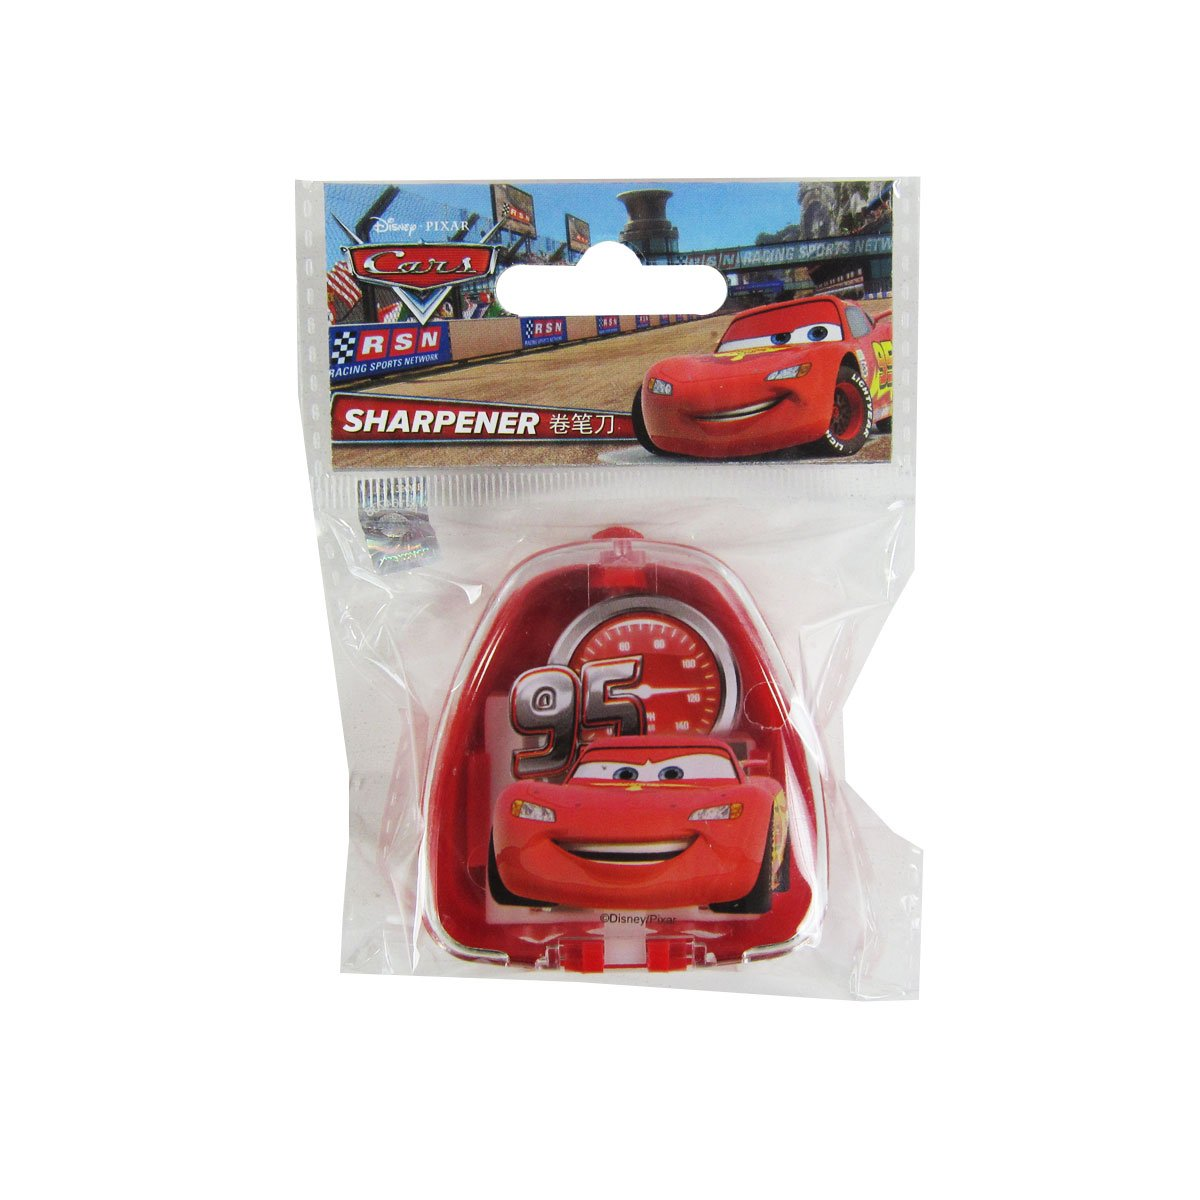 Officially Licensed Three Size Pencil Sharpener - Lightning McQueen by Mirage